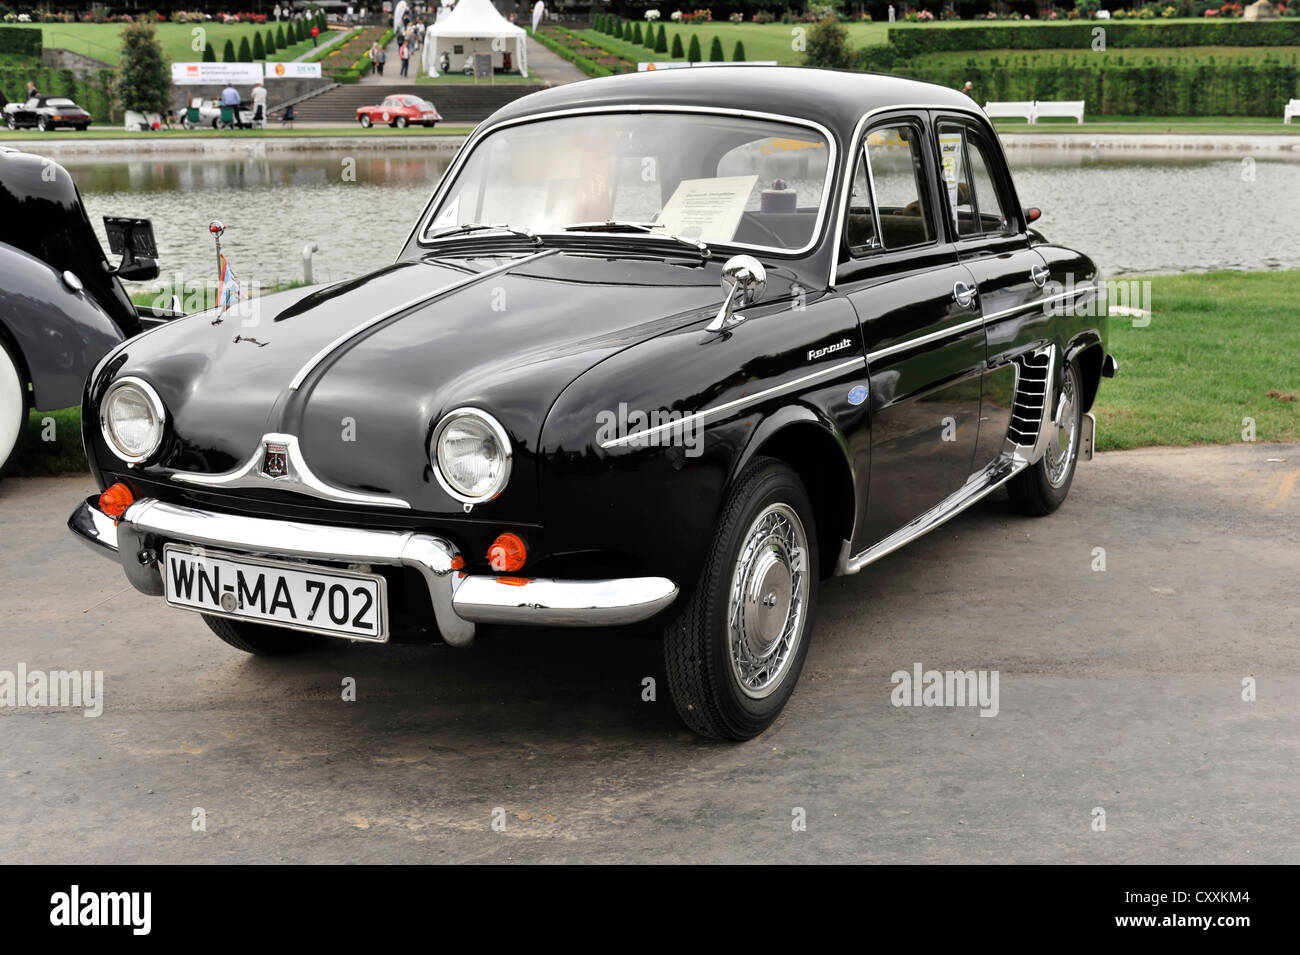 Renault Dauphine High Resolution Stock Photography And Images Alamy